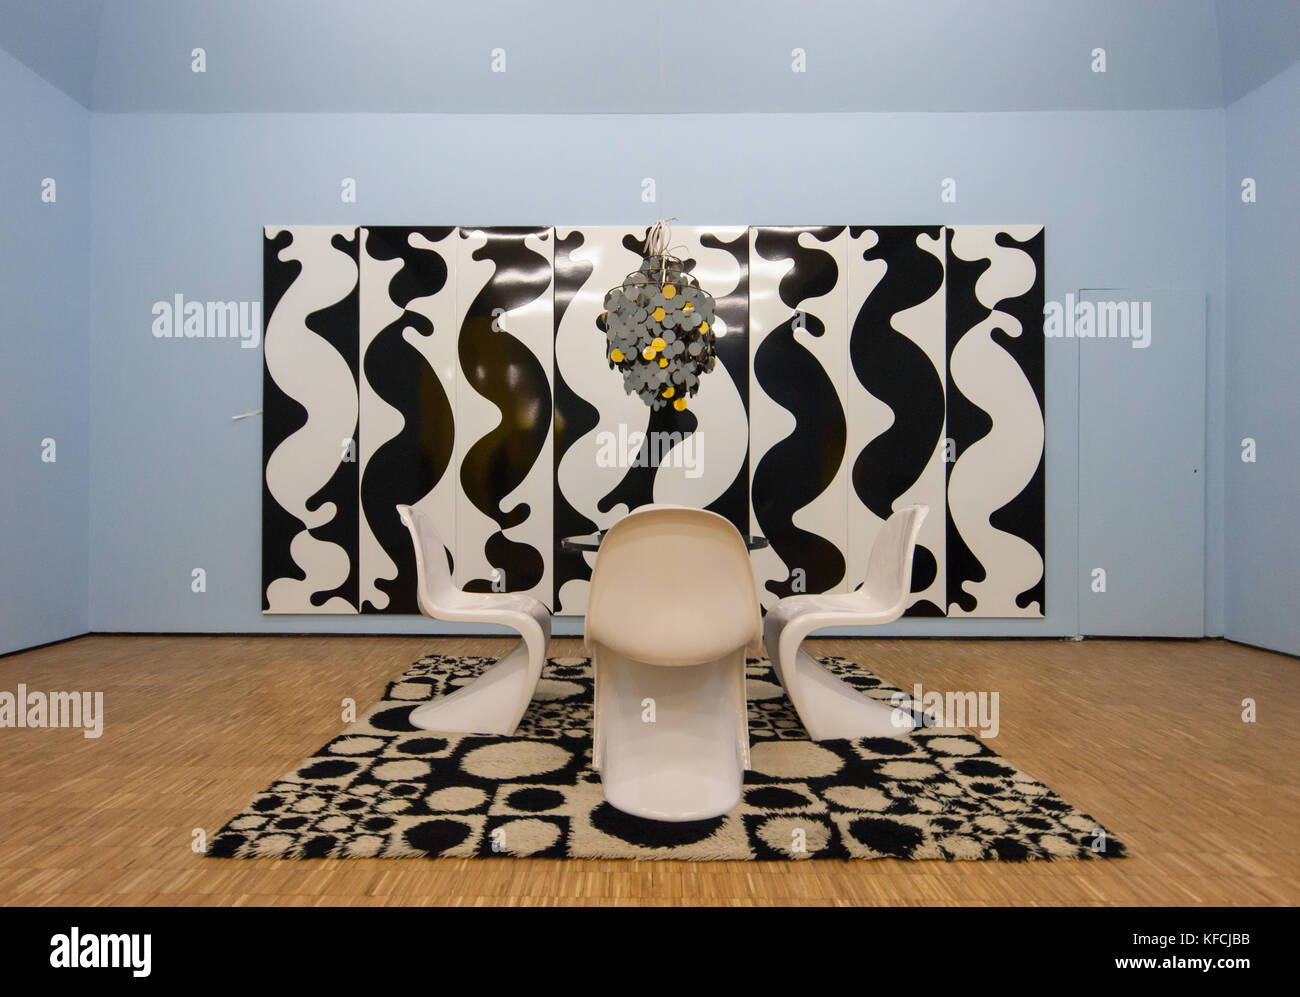 1960s Design Classic Furniture High Resolution Stock Photography And Images Alamy